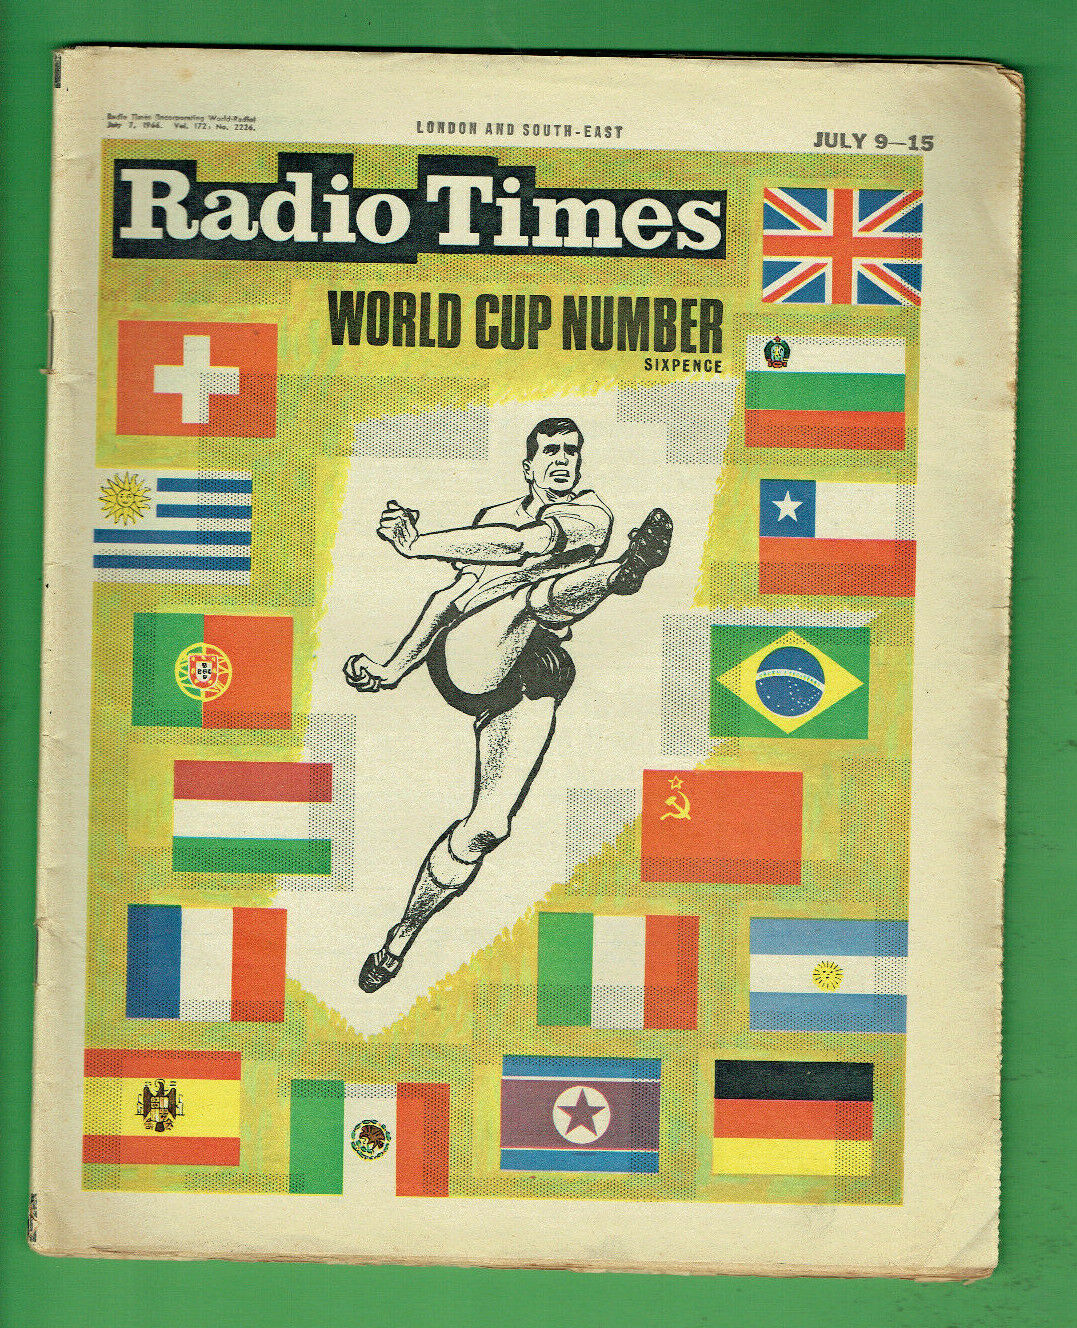 T66.   RADIO TIMES NEWSPAPER - 9-15 7 1966 - SOCCER   FOOTBALL WORLD CUP